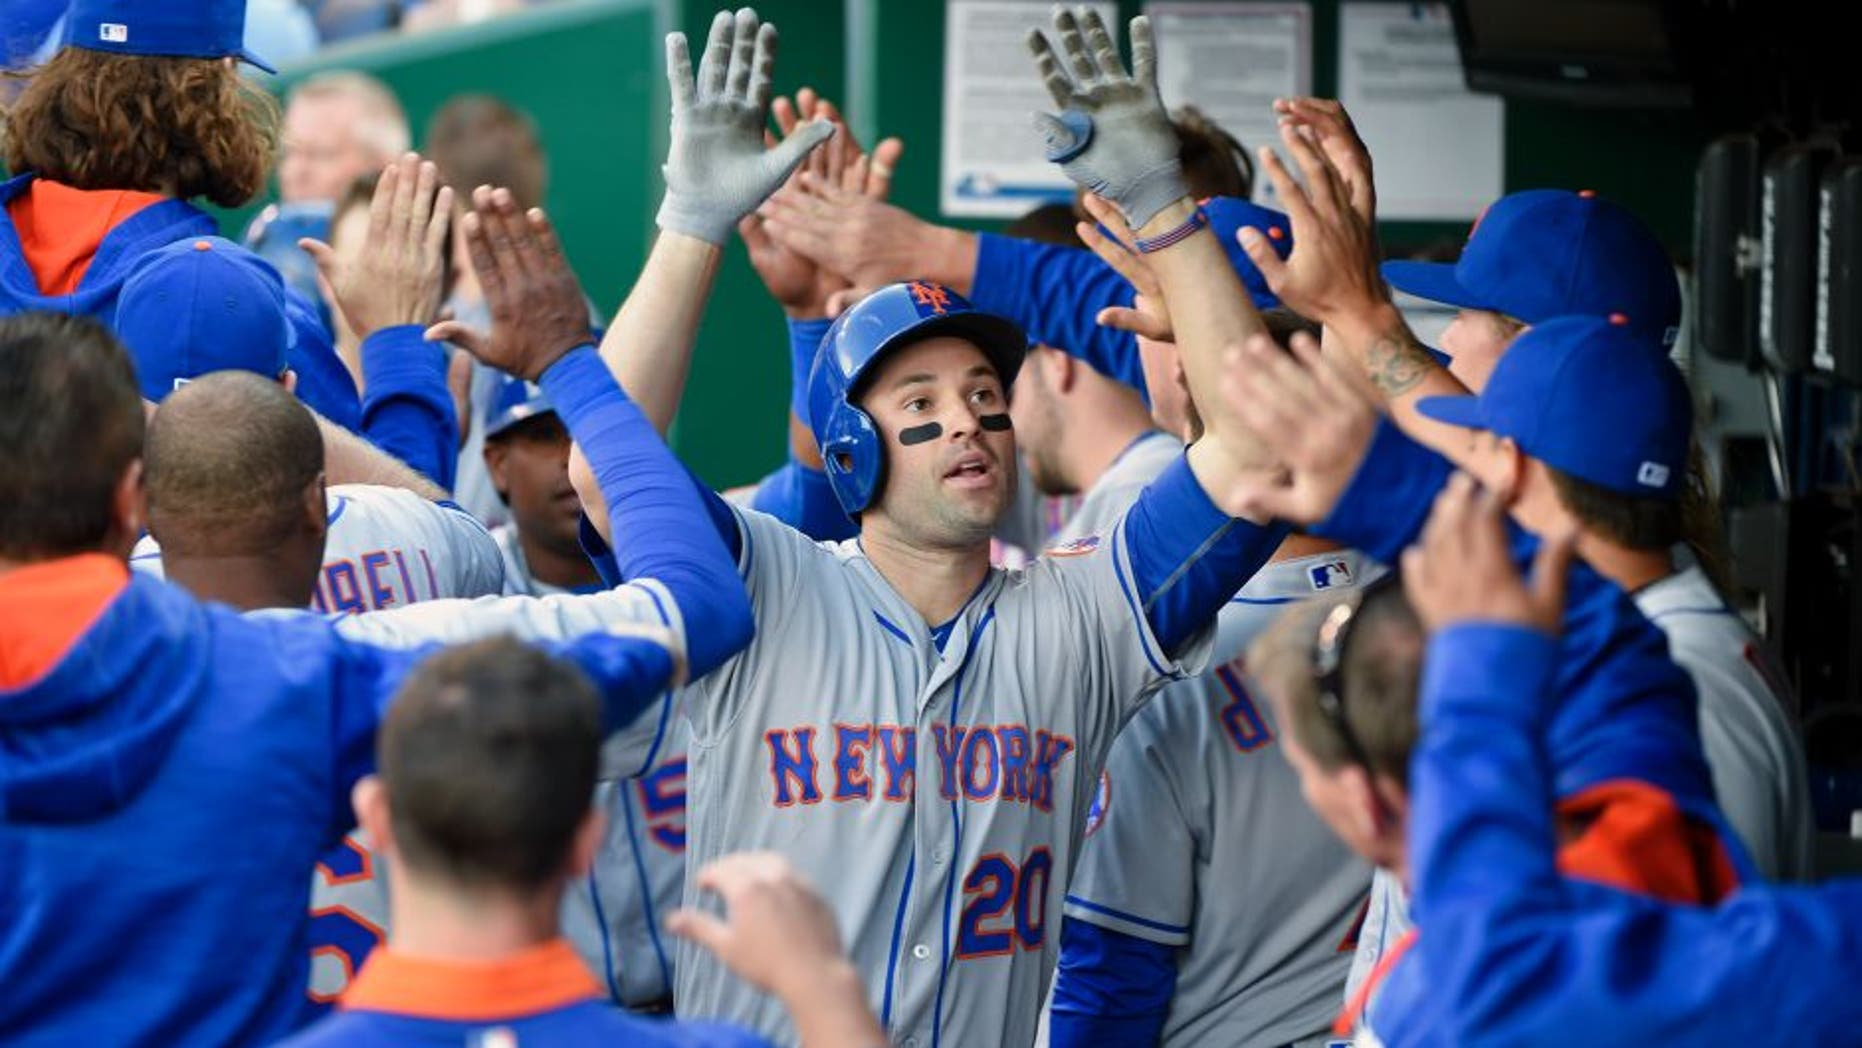 KANSAS CITY, MO - APRIL 5: Neil Walker #20 of the New York Mets celebrates his two-run home run with teammates in the fourth inning during a game against the Kansas City Royals at Kauffman Stadium on April 5, 2016 in Kansas City, Missouri. (Photo by Ed Zurga/Getty Images)